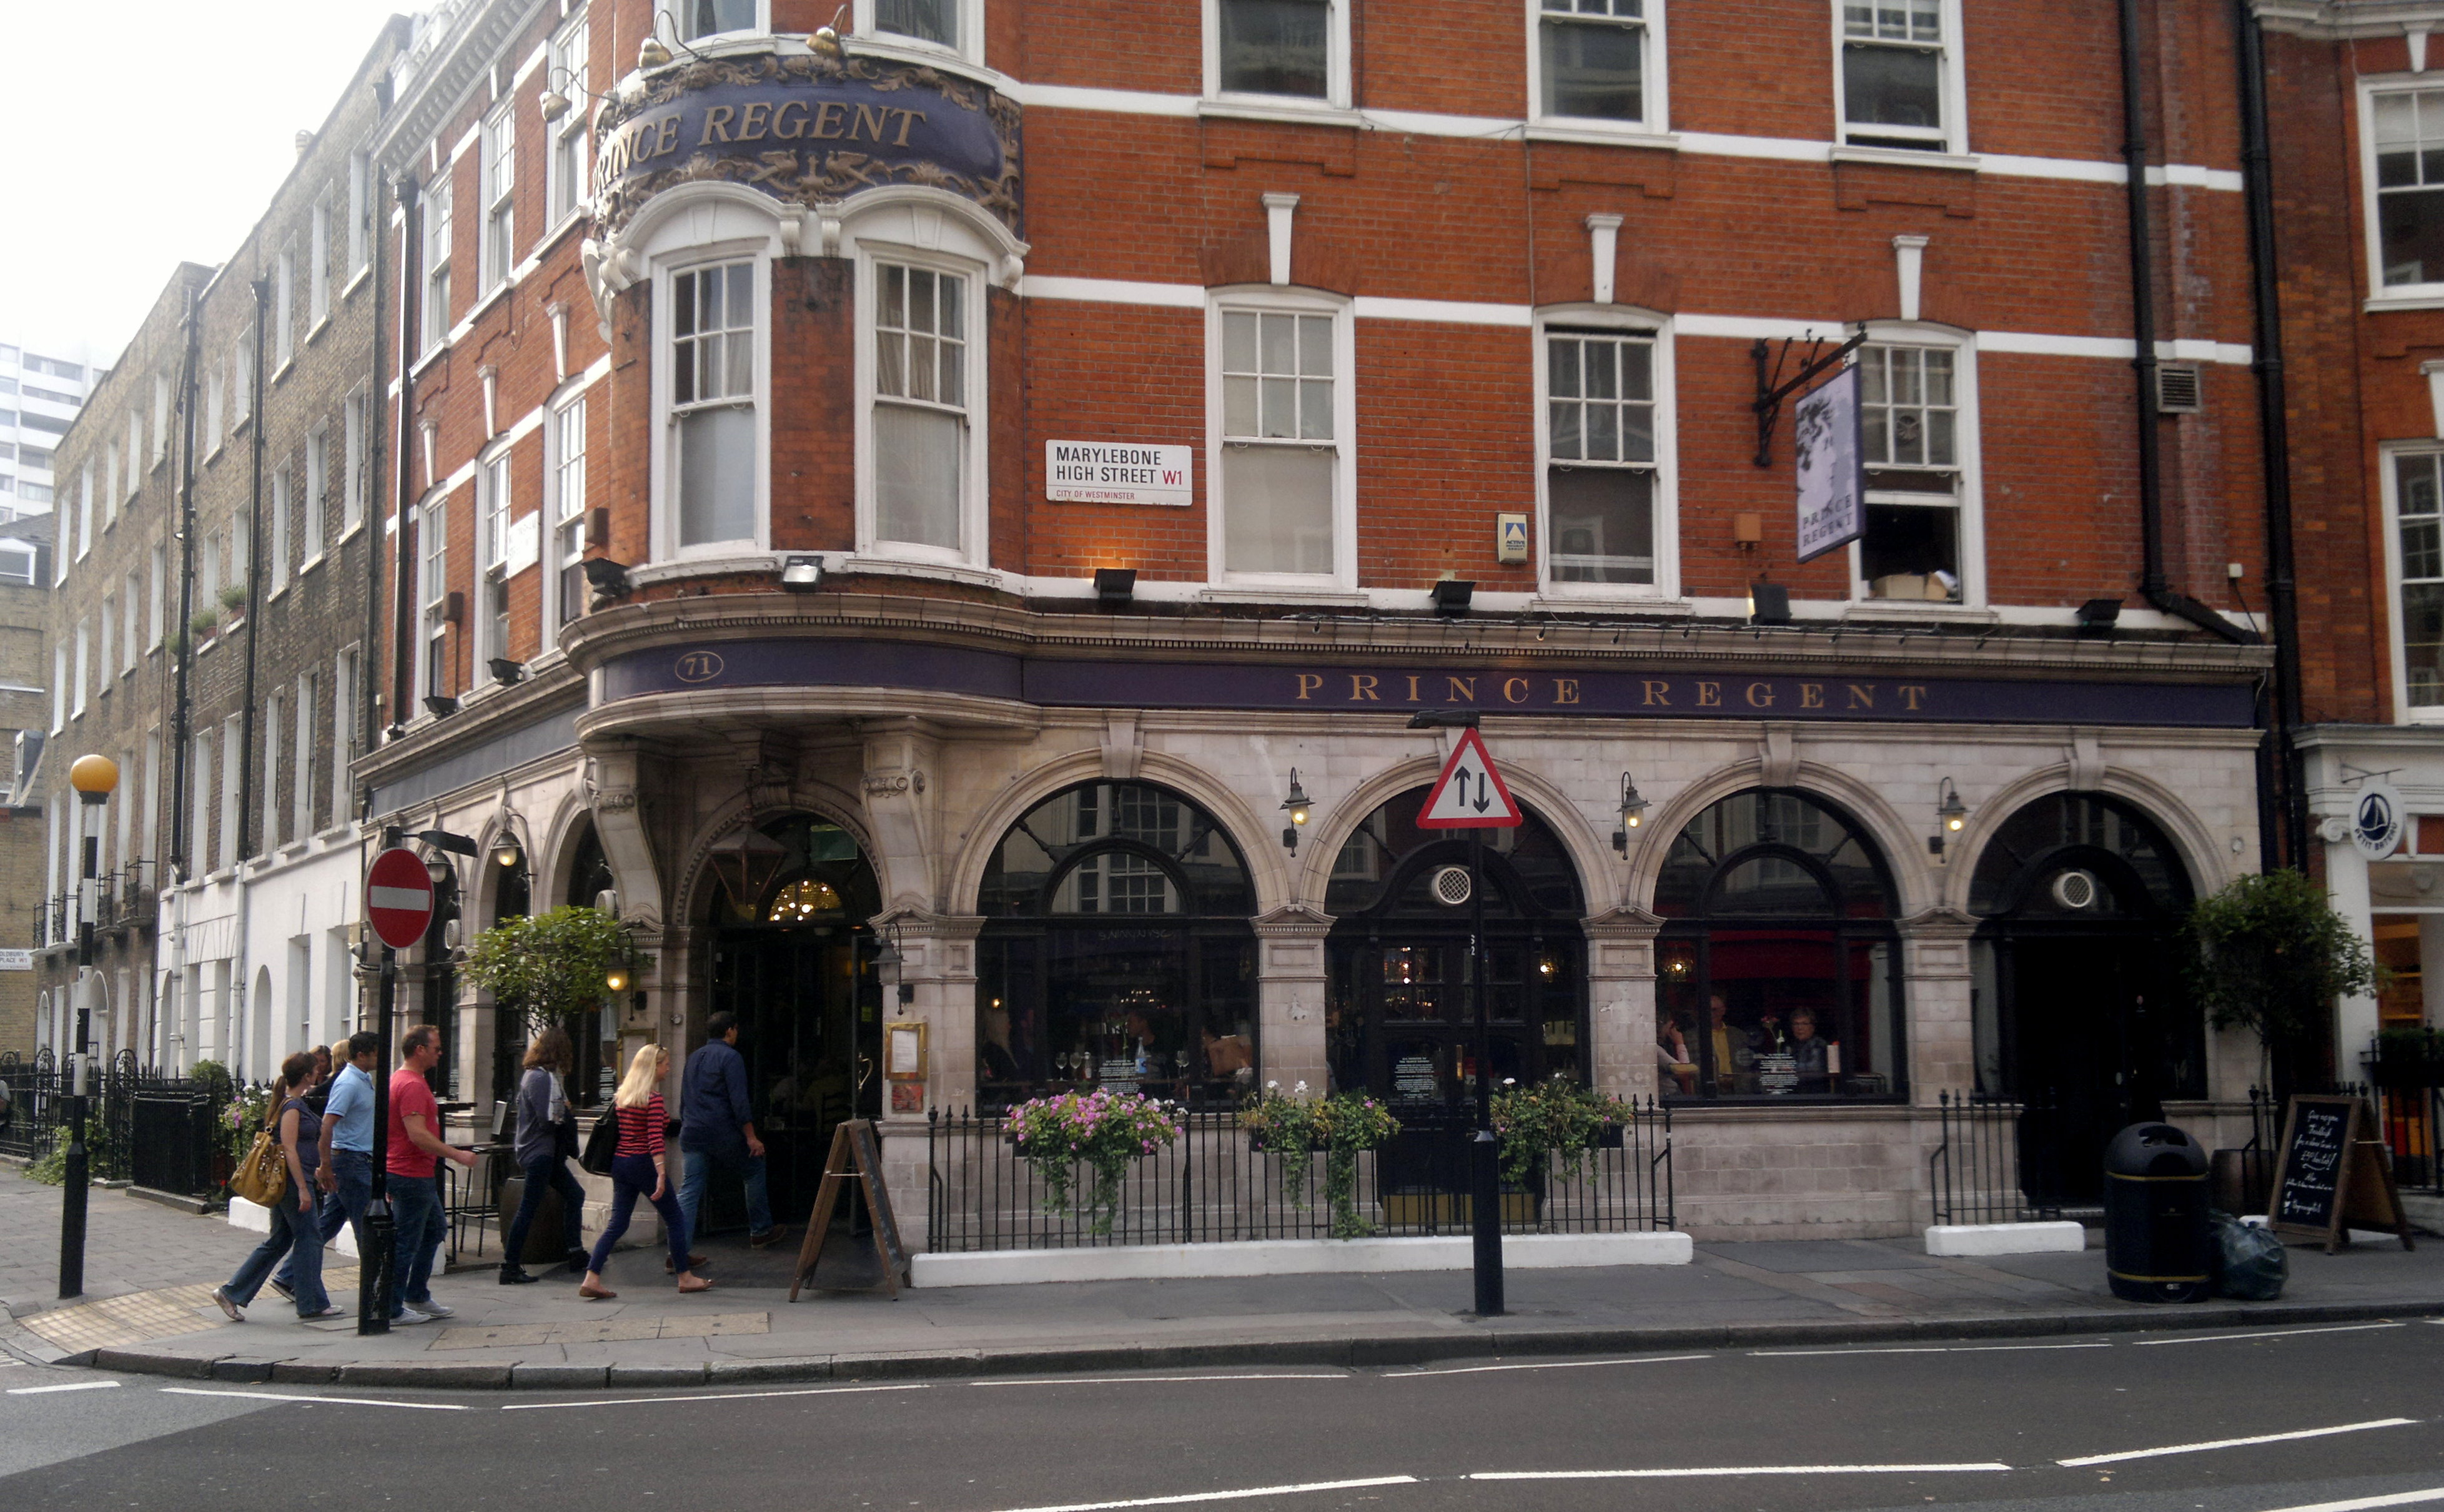 The Prince Regent Hotel west end office space